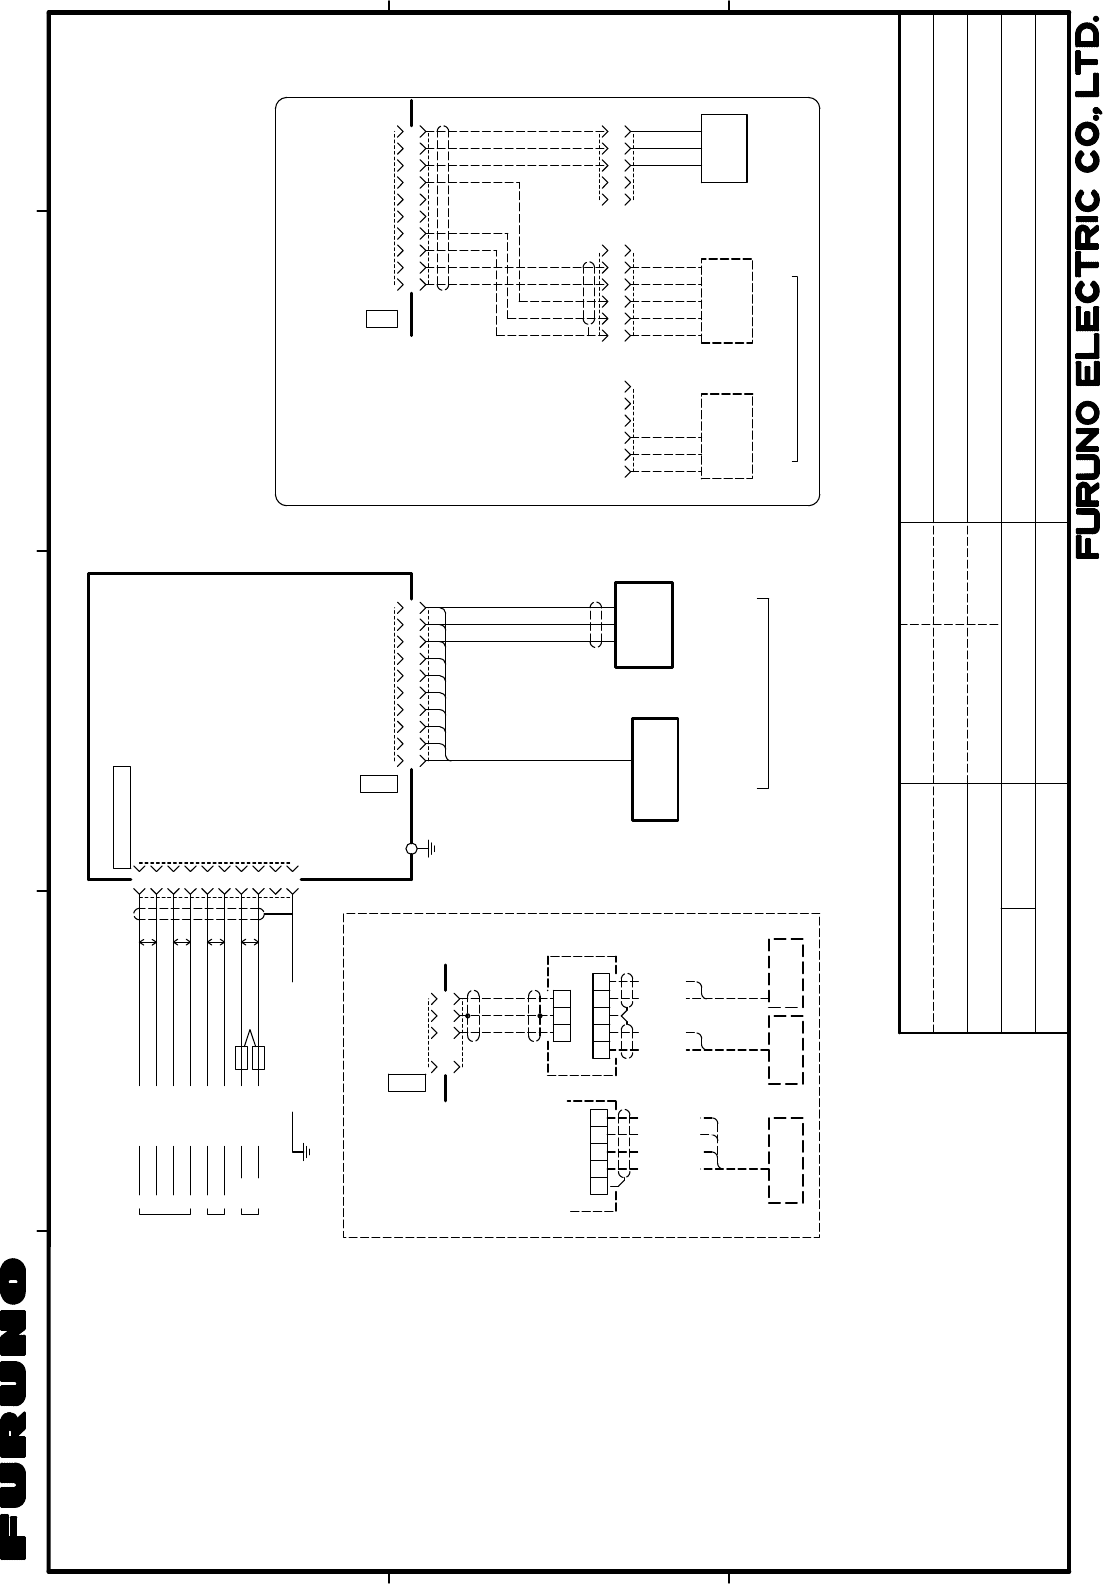 943161b8 387e 474f 9fd0 d2ddb8c1e75f bg37 page 55 of furuno sonar fcv 585 user guide manualsonline com furuno fcv 620 wiring diagram at crackthecode.co